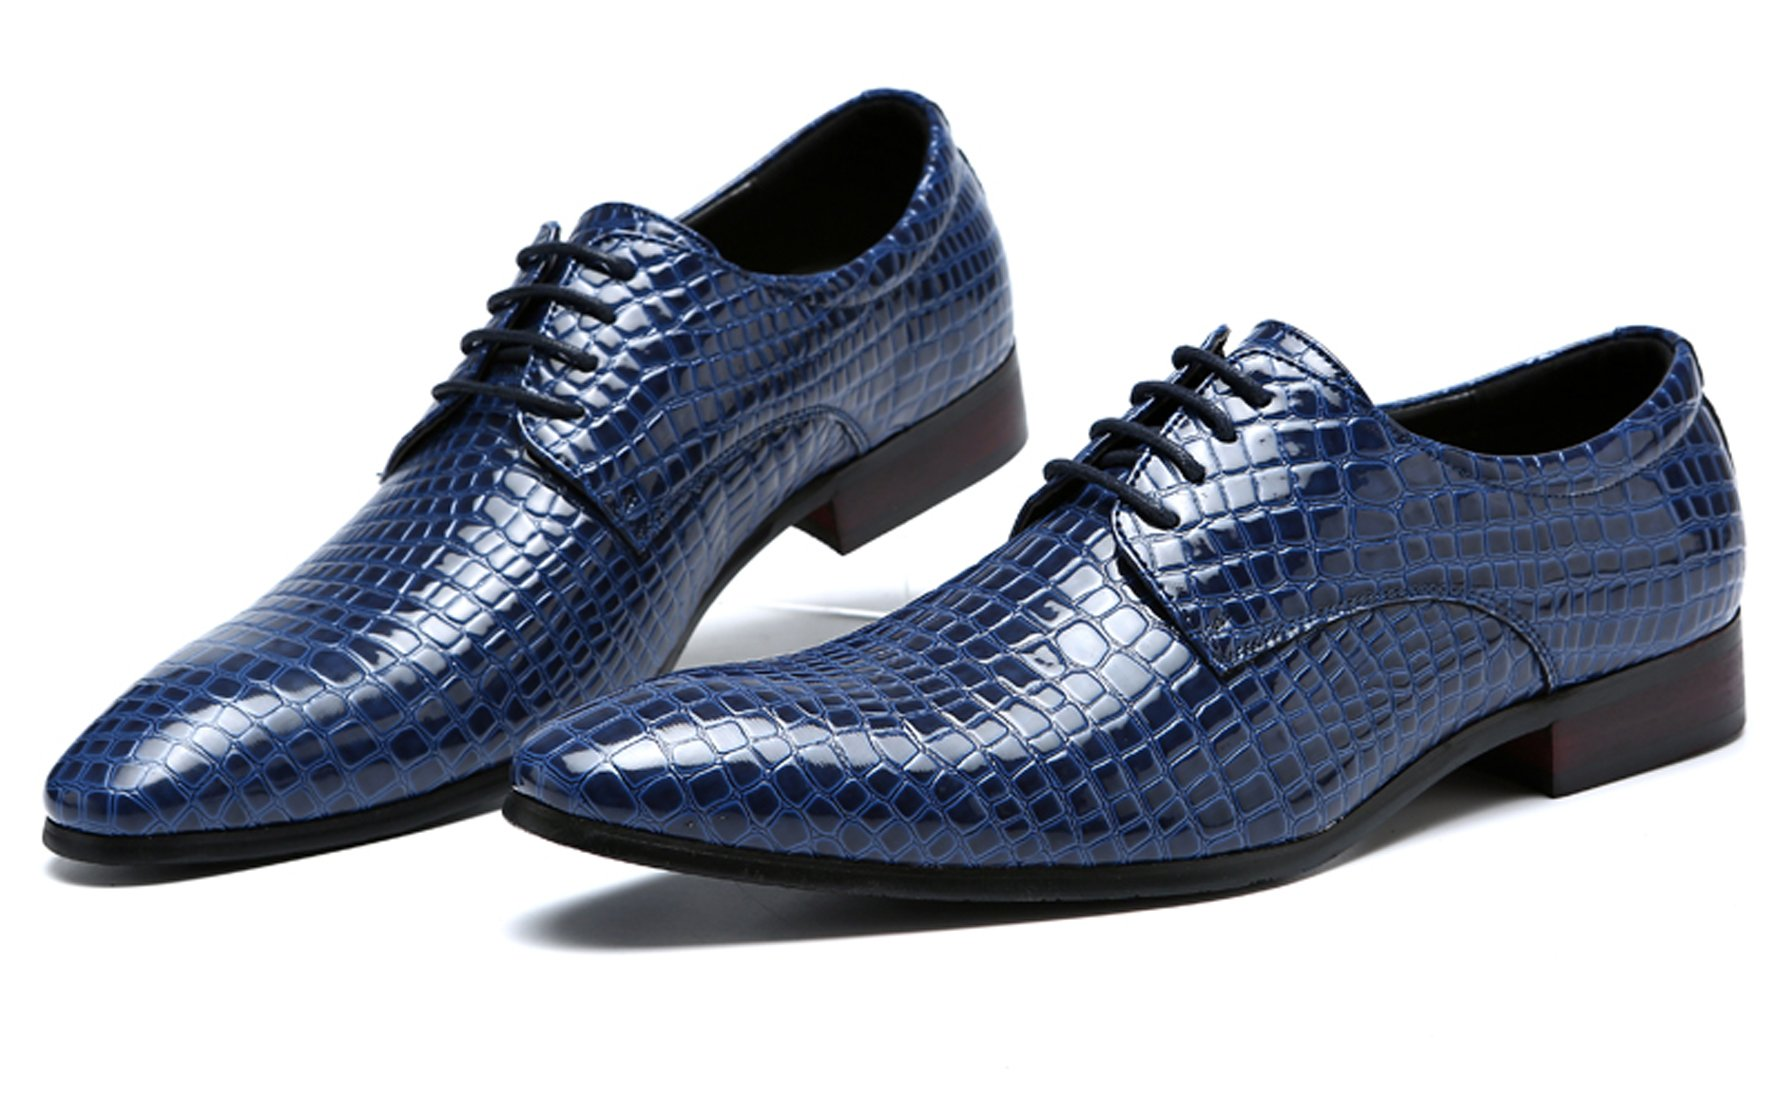 Blue Oxford Dress Shoes Men Pointed Toe Italy Alligator Patent Leather Lace Up Wedding Formal Derby Shoes 7 D(M) US by Santimon (Image #5)